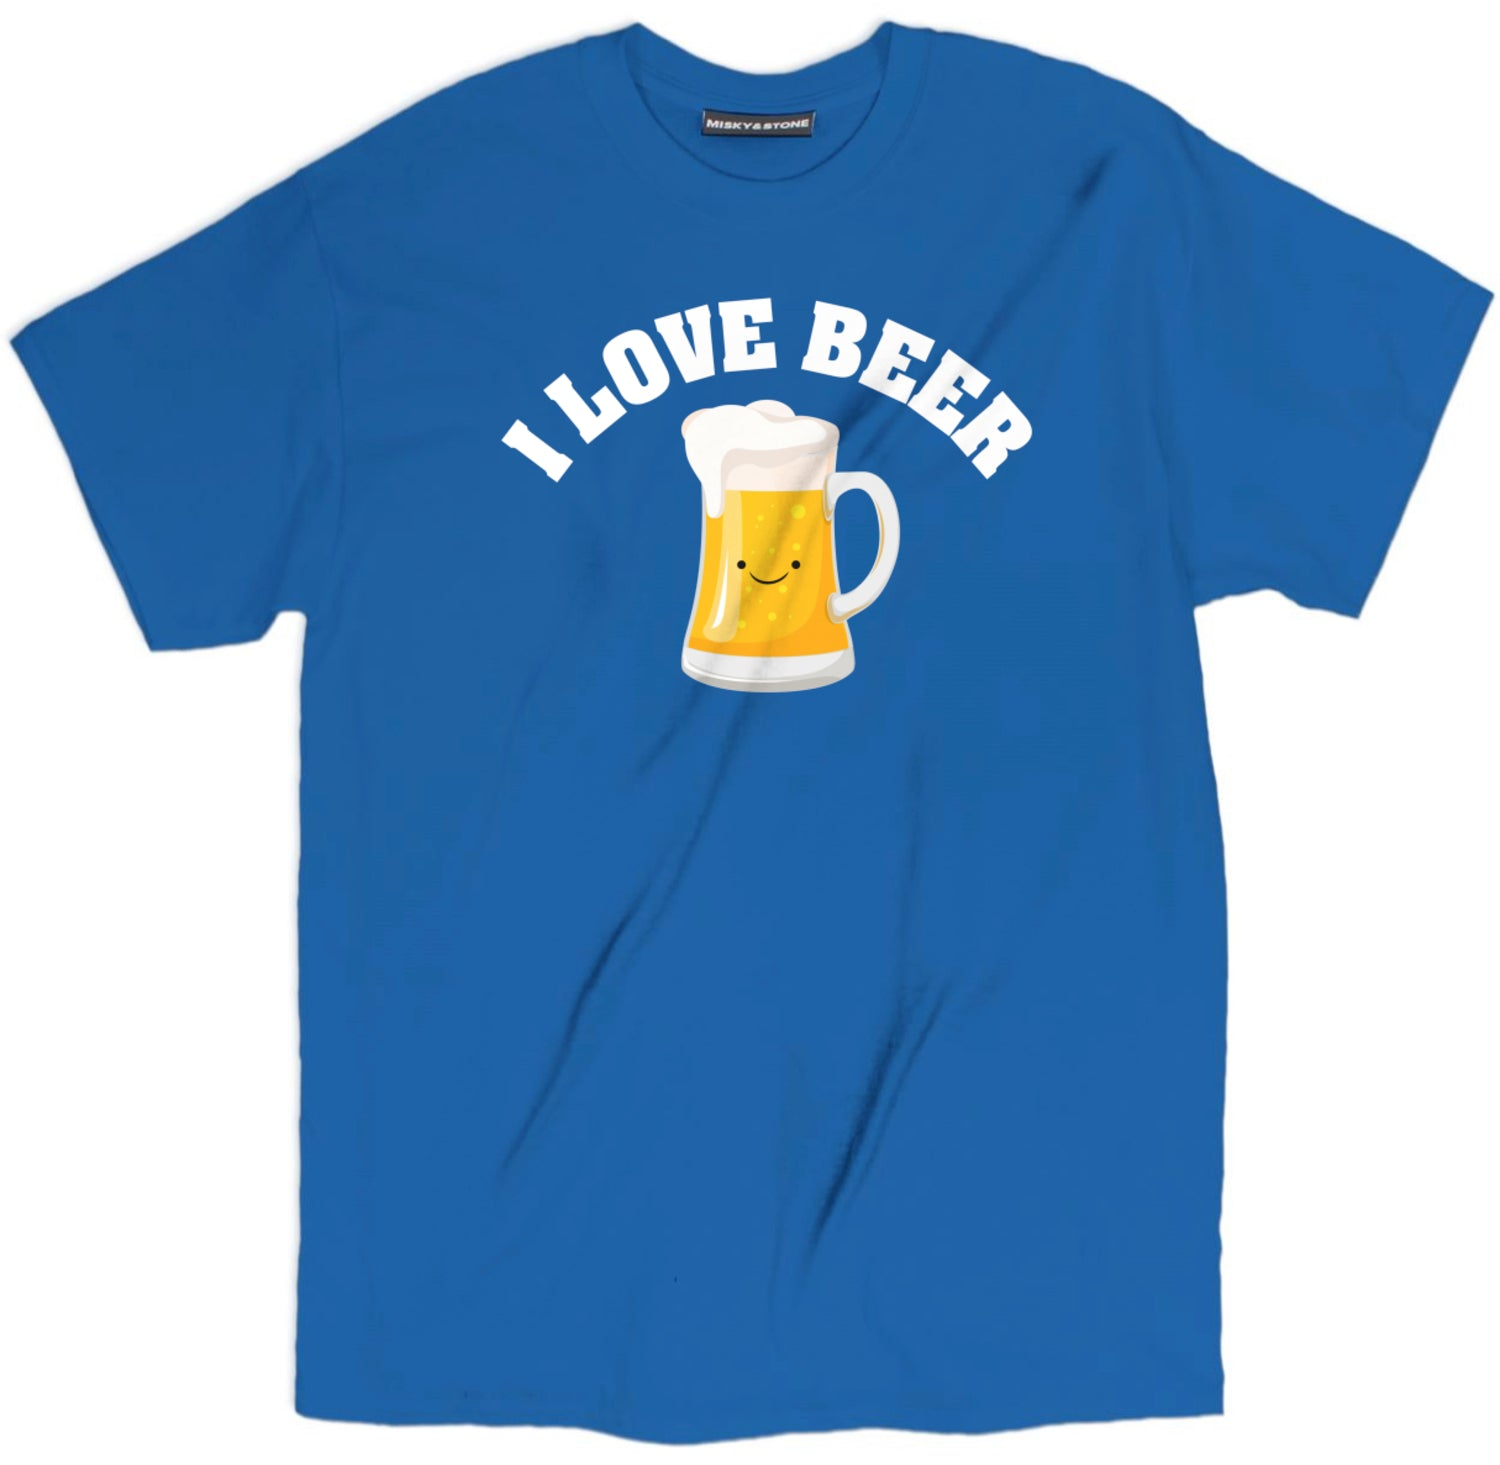 I Love Beer Smily Face Shirt